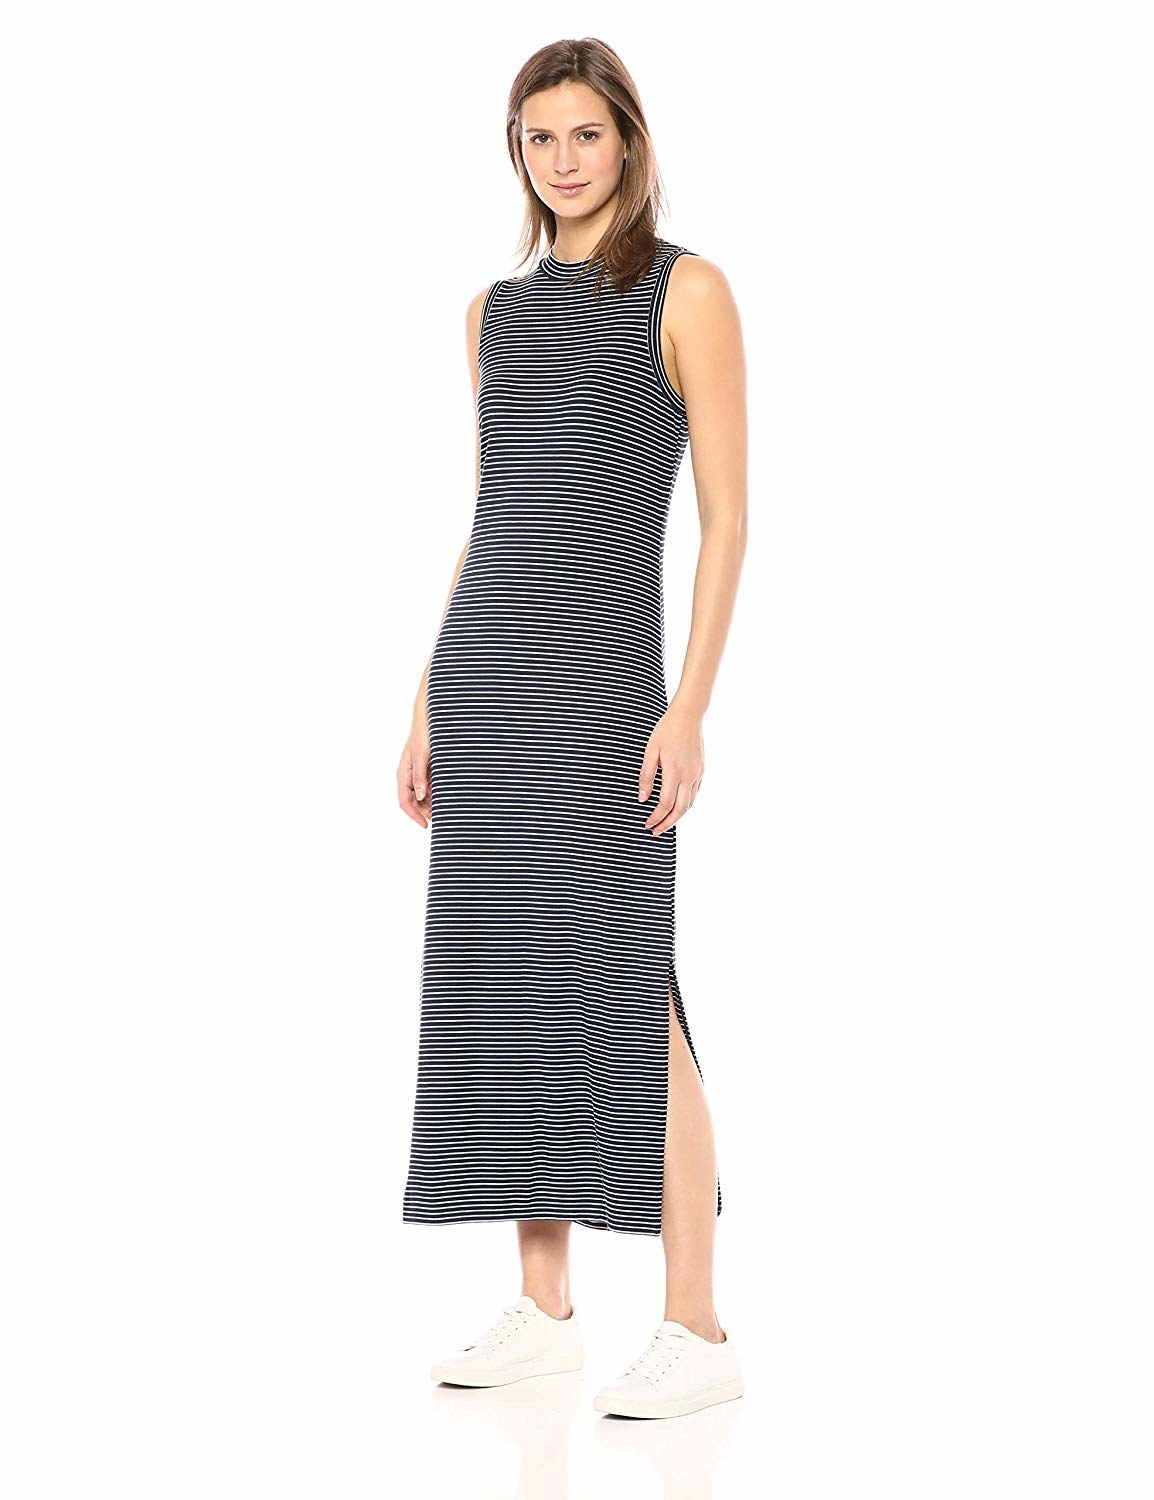 c9243acc66e A mock-neck maxi dress made from a super soft jersey material — so if you  want to feel like you re wearing pajamas whilst in public